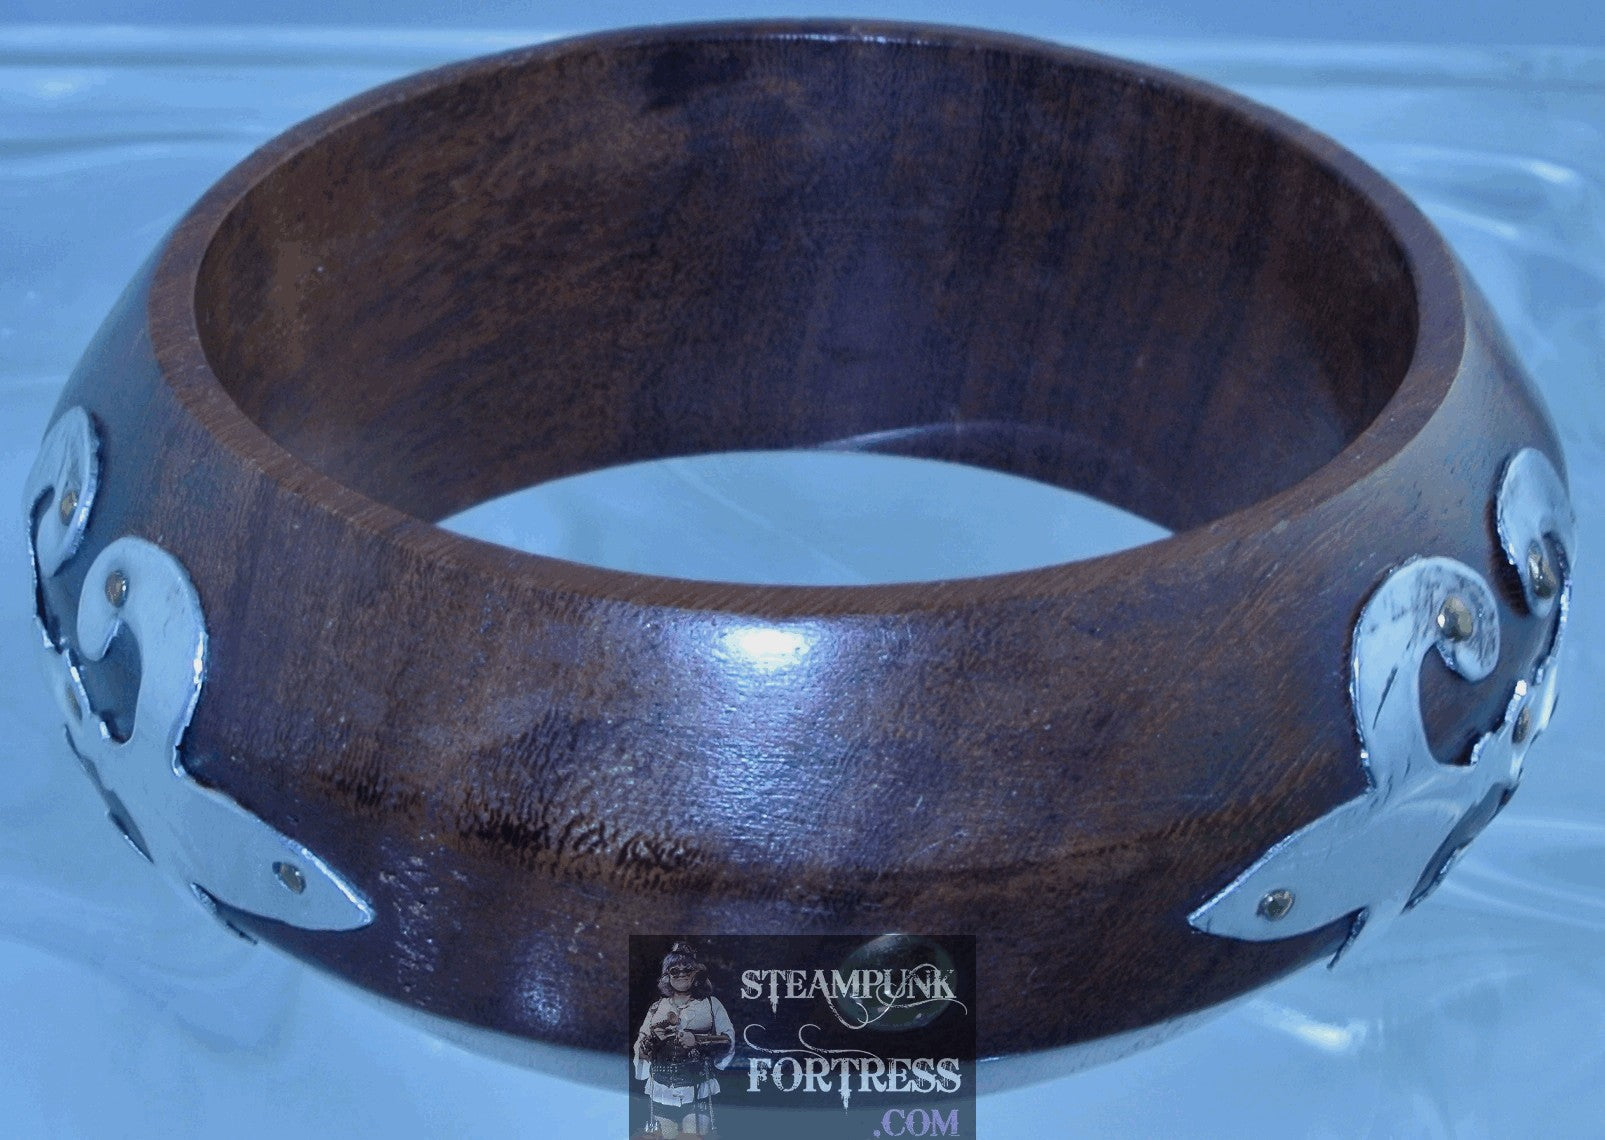 BROWN ROSEWOOD BANGLE 3 SILVER FLEUR DE LIS BRACELET DIESELPUNK STEAMPUNK OUTLANDER FRANCE FRENCH COSPLAY COSTUME HALLOWEEN - MASS PRODUCED